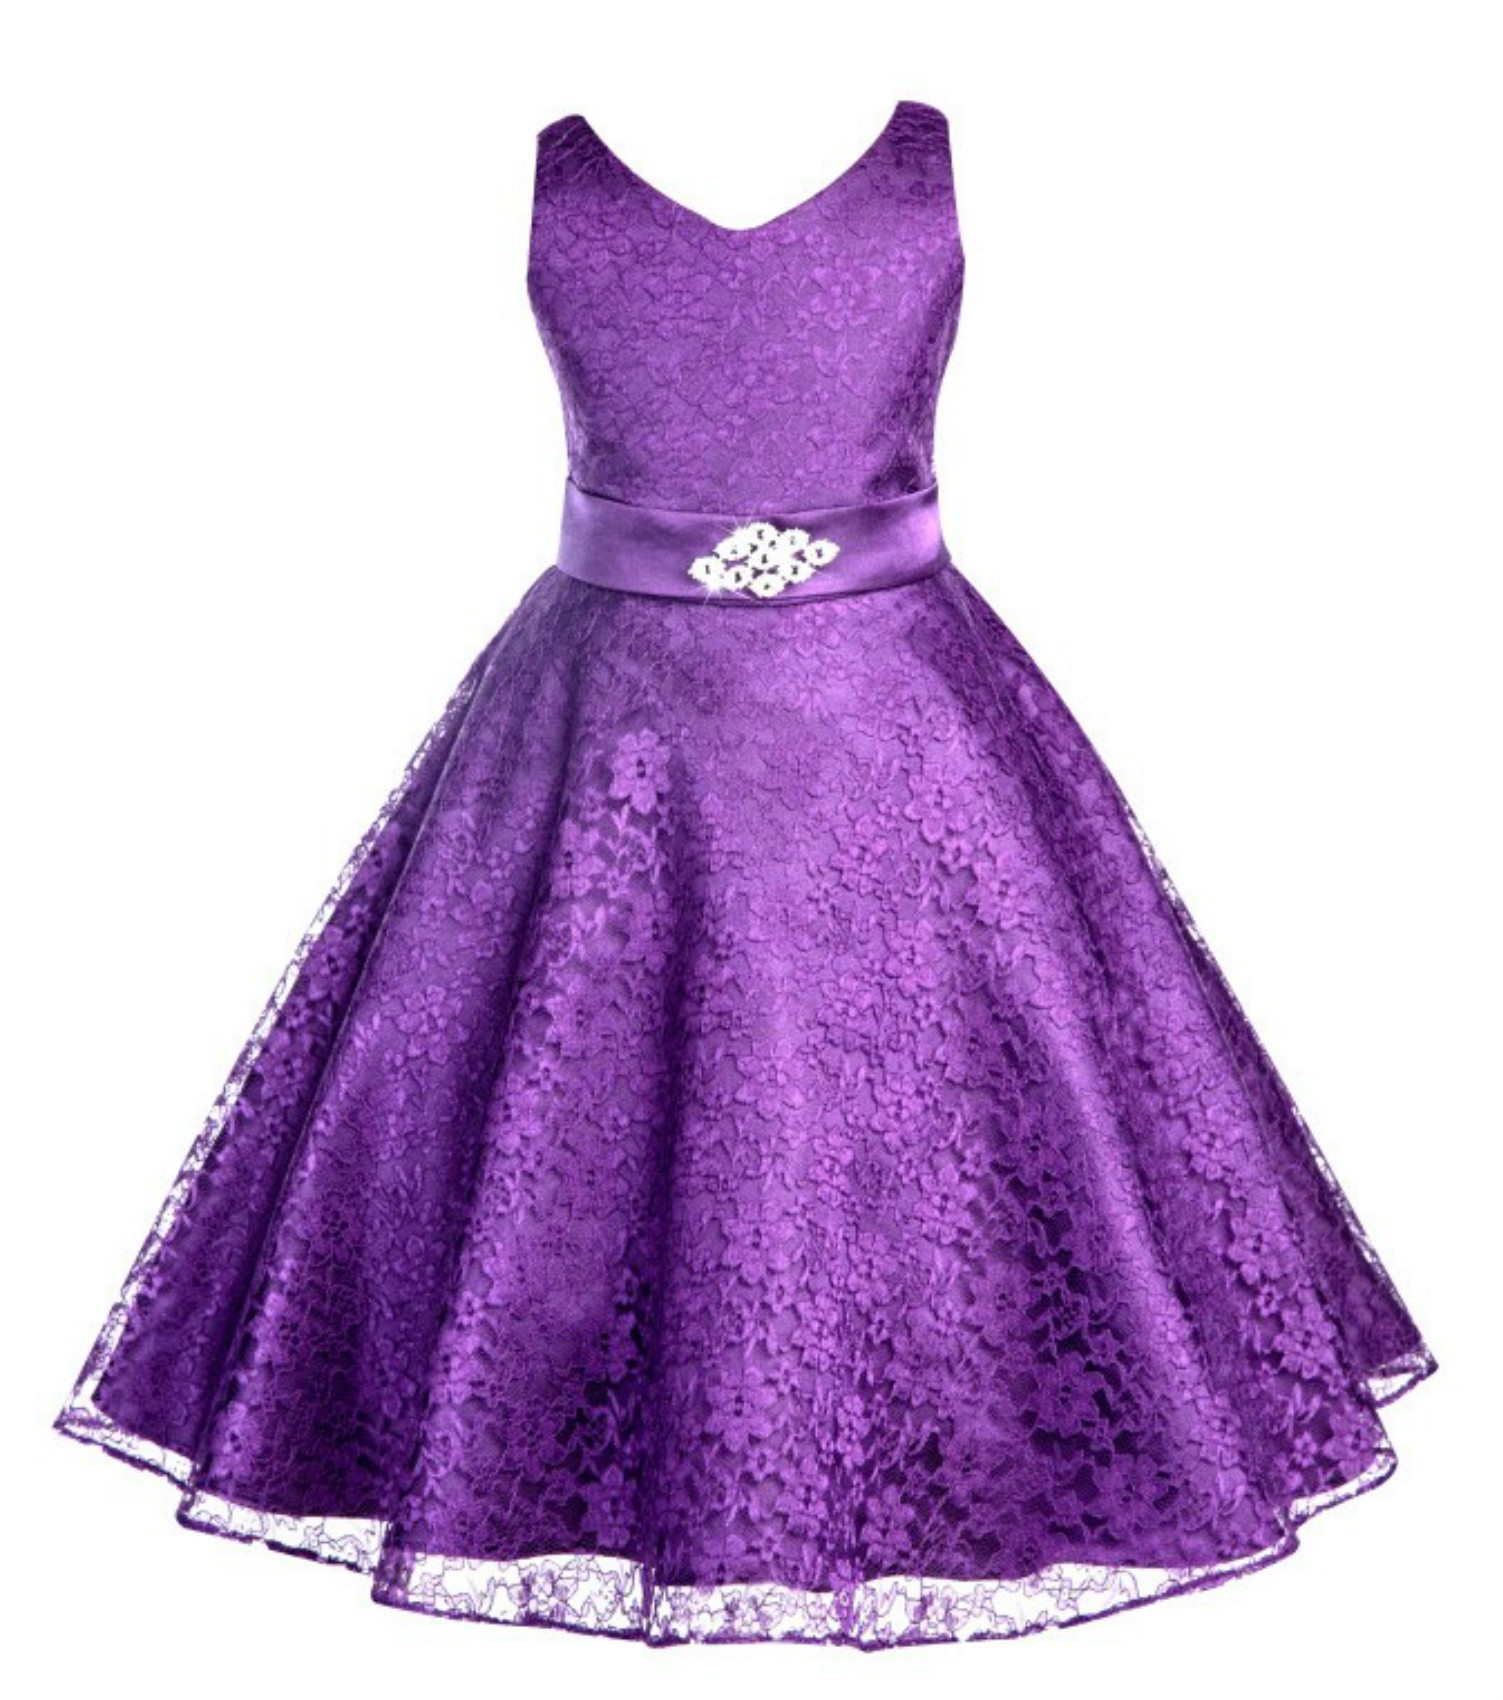 8d5627c4b2 Purple Floral Lace Overlay V-Neck Rhinestone Flower Girl Dress 166S ...